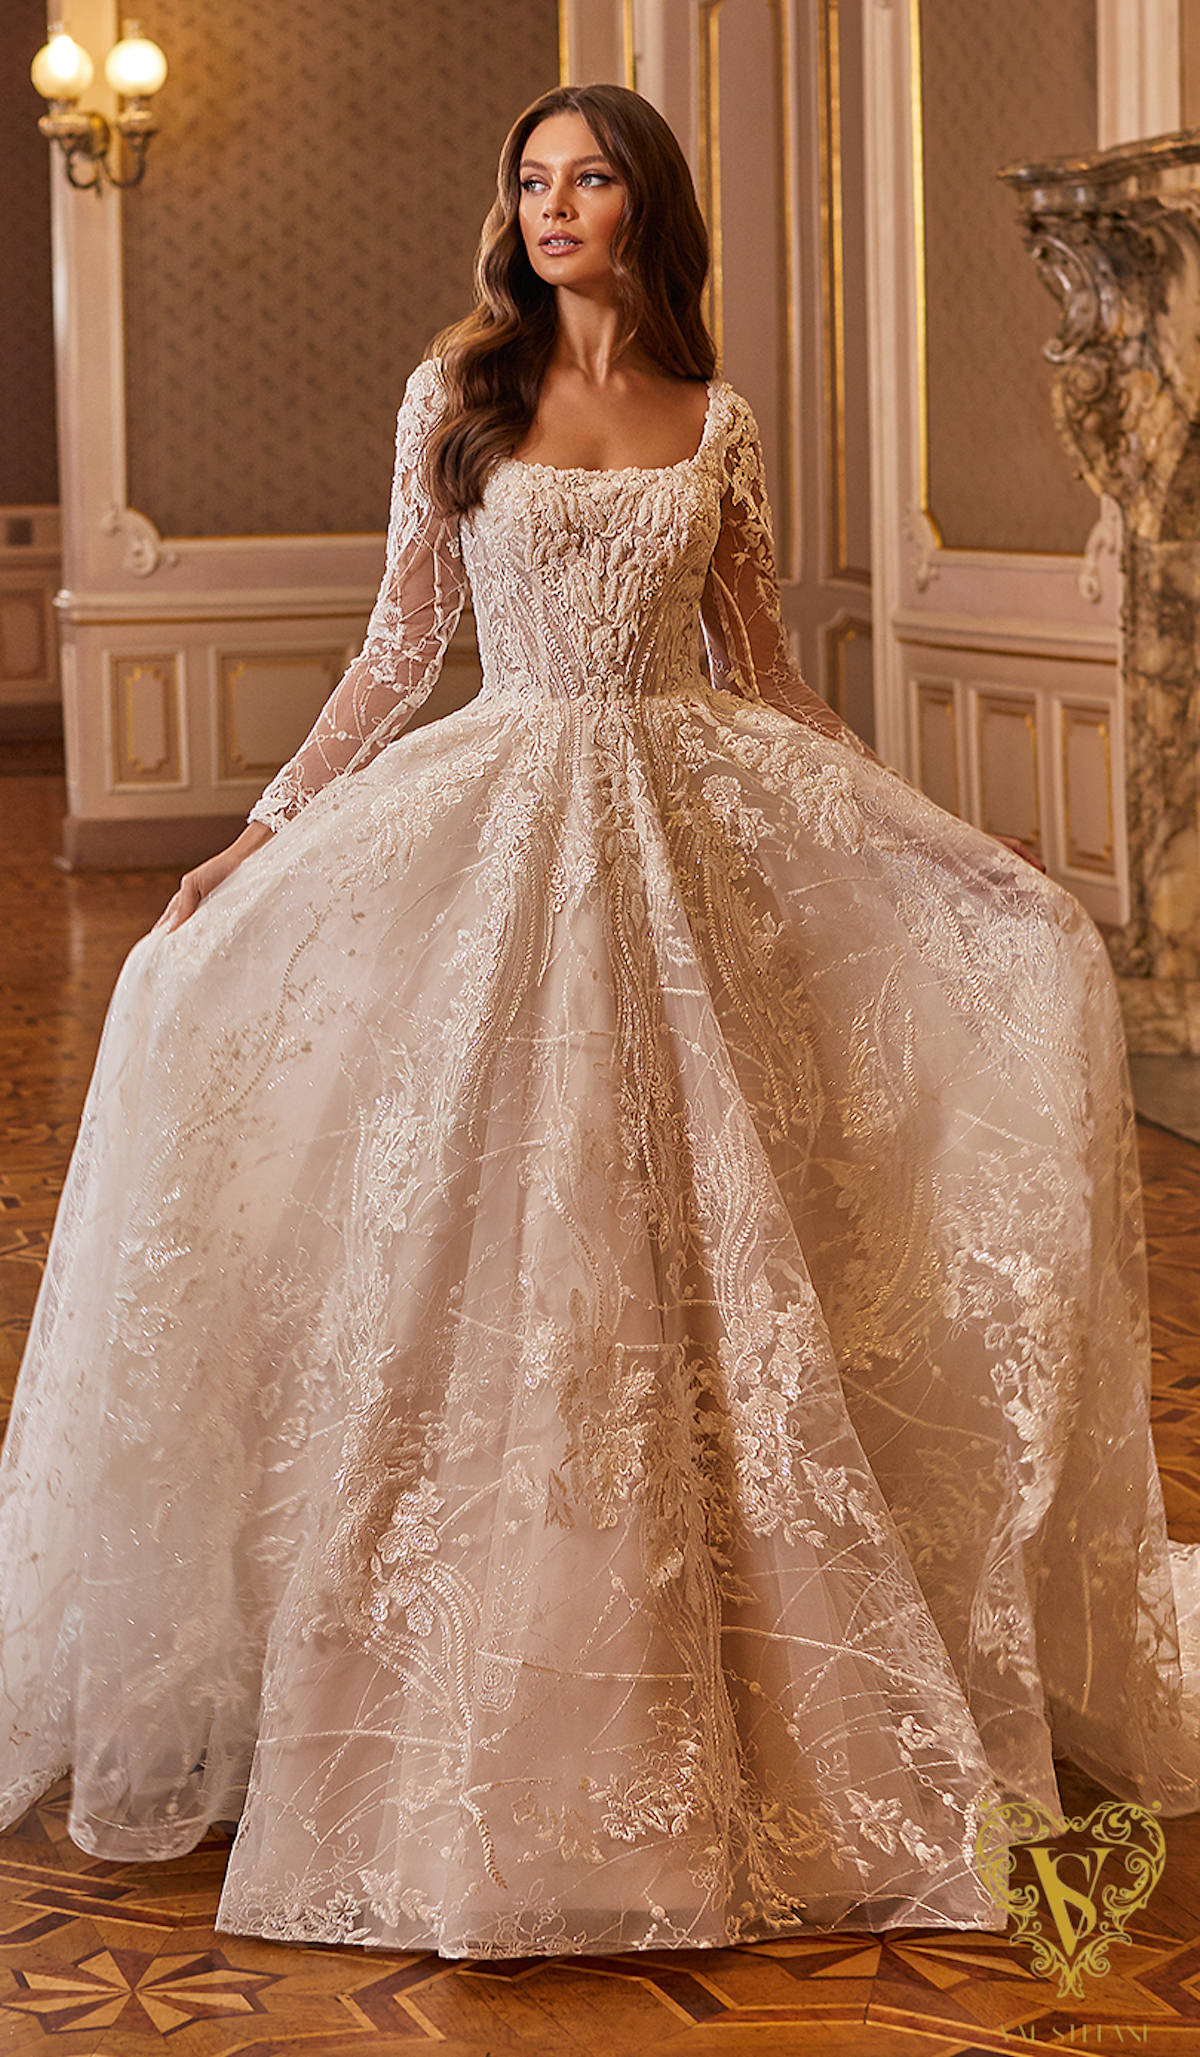 Val Stefani Wedding Dresses Fall 2021 - Opus Collection - Floria - Style D8275